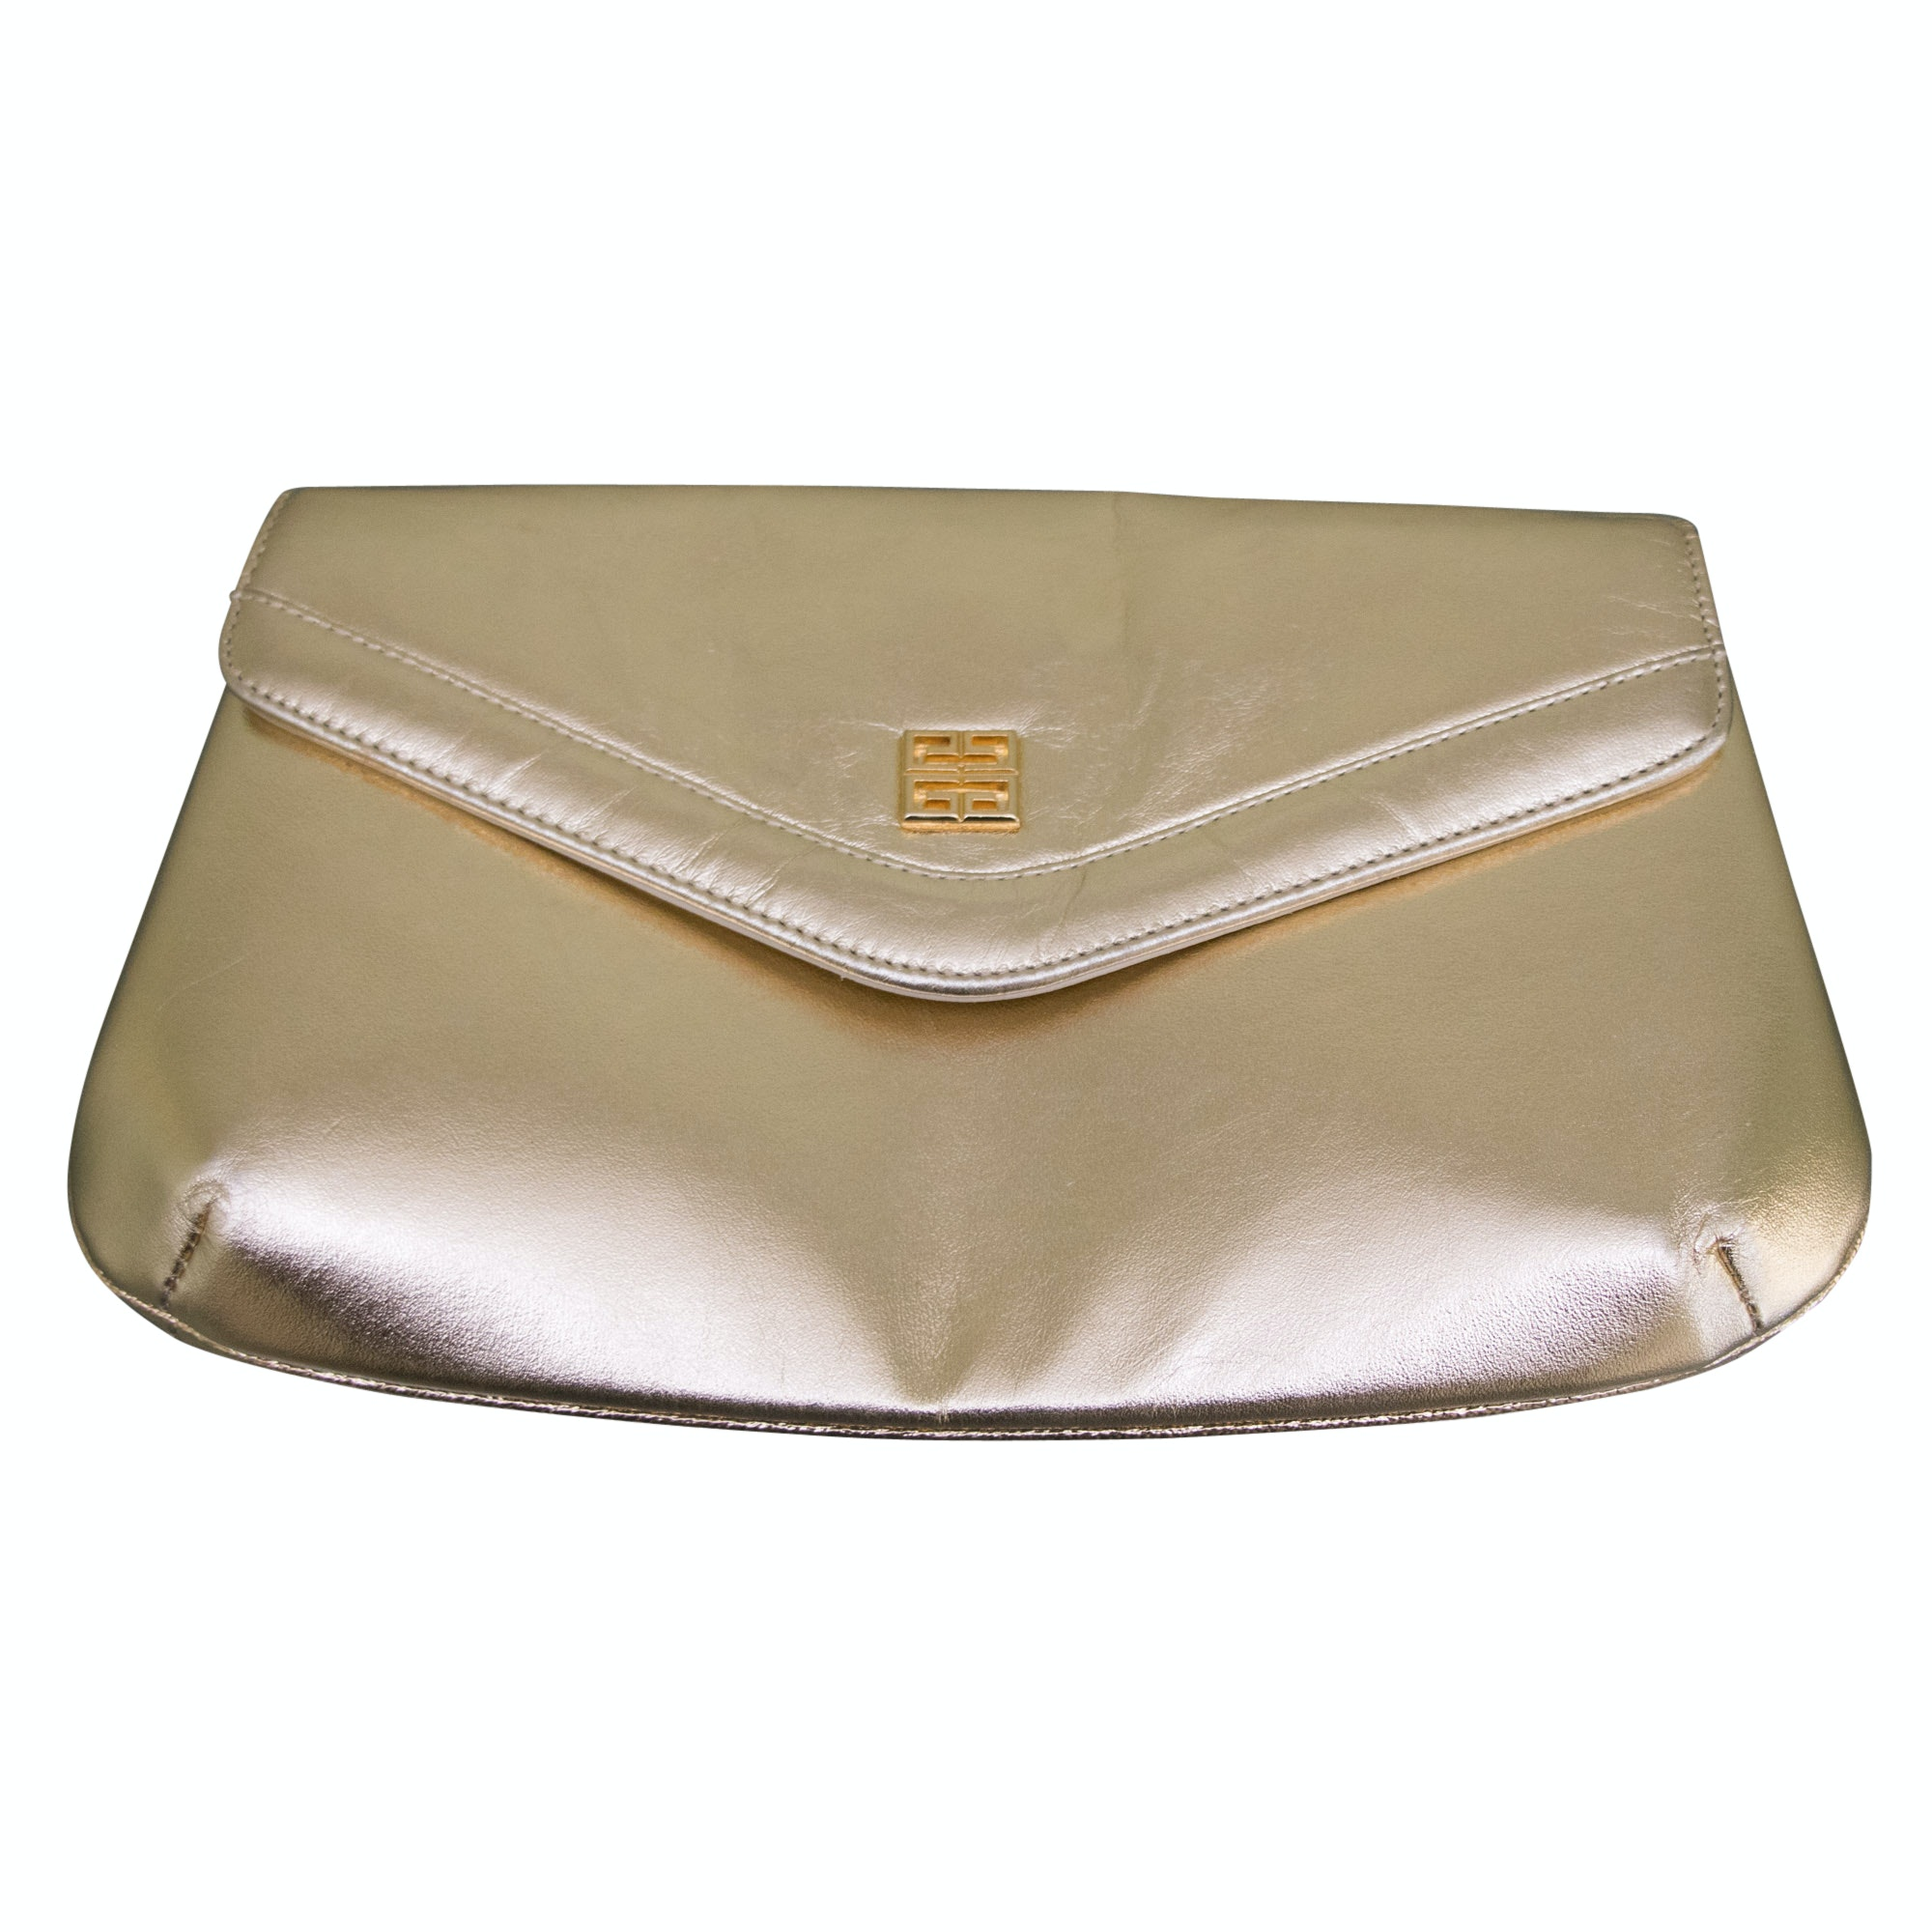 Vintage Givenchy Paris Gold Metallic Leather Clutch Purse with Shoulder Strap